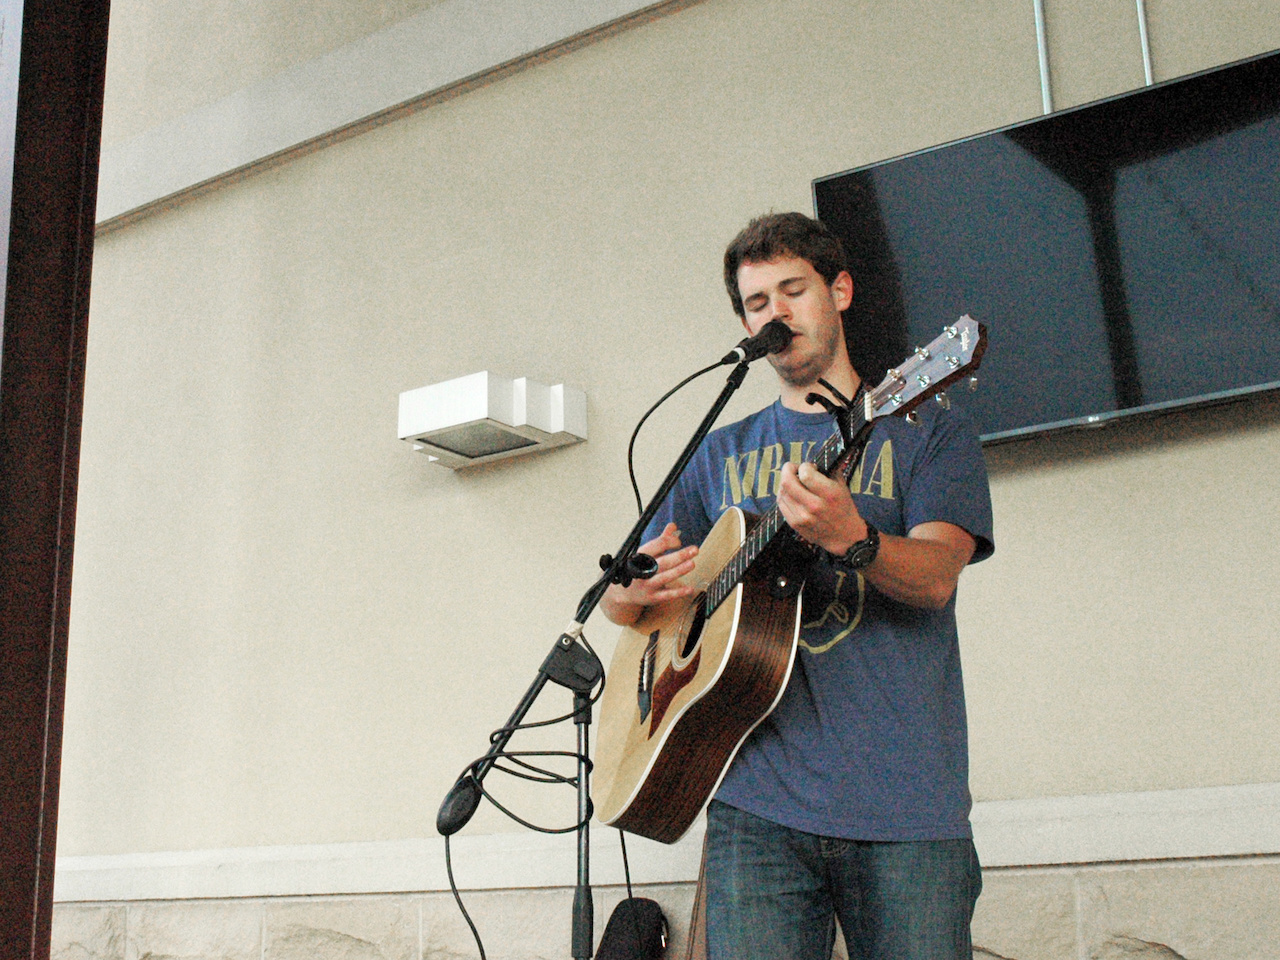 Local musician Conner Patrick serenades patrons before the sun sets.